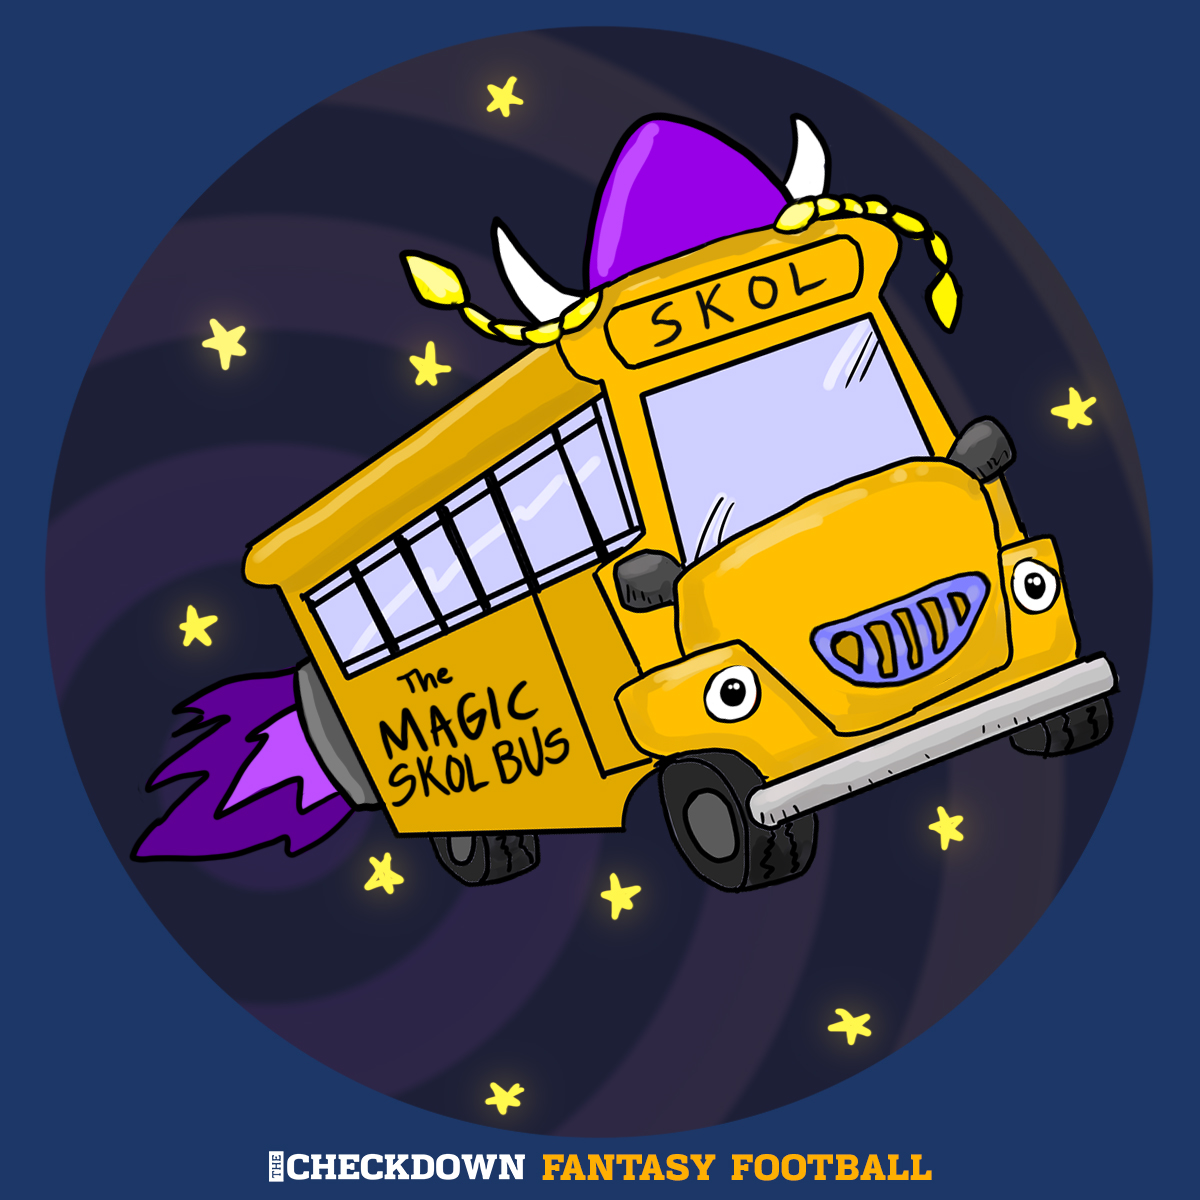 MAGIC-SKOL-BUS.jpg